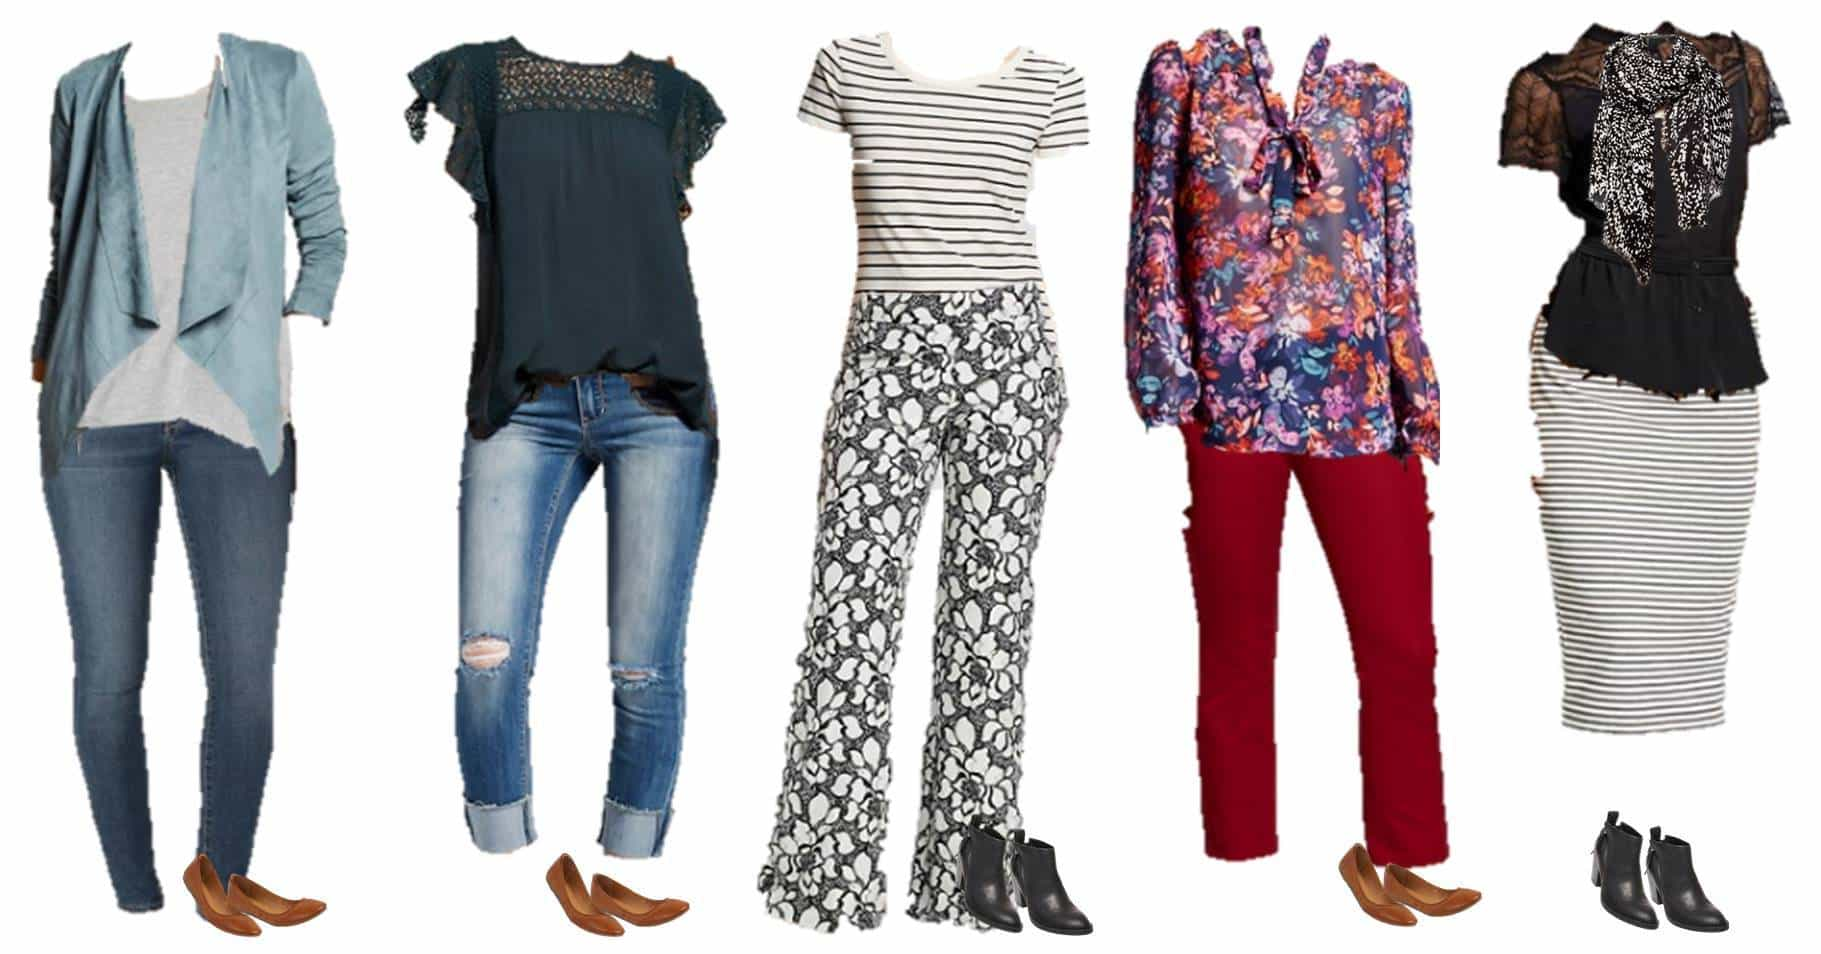 8.2 Mix and Match Fashion - Fall Styles from Target 1-5